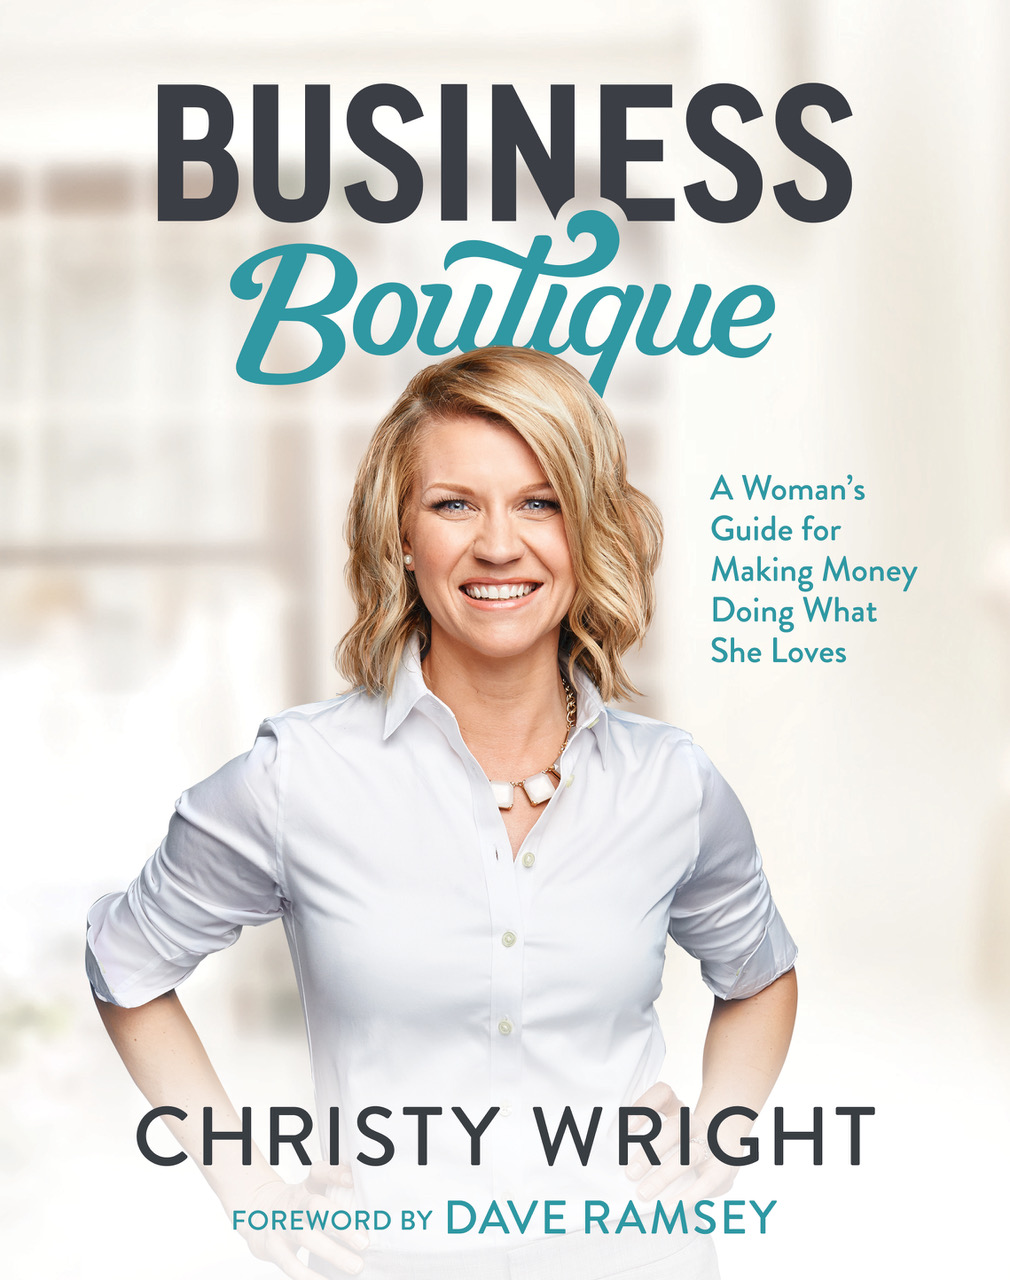 Book Review: 'Business Boutique—A Woman's Guide for Making Money Doing What She Loves'